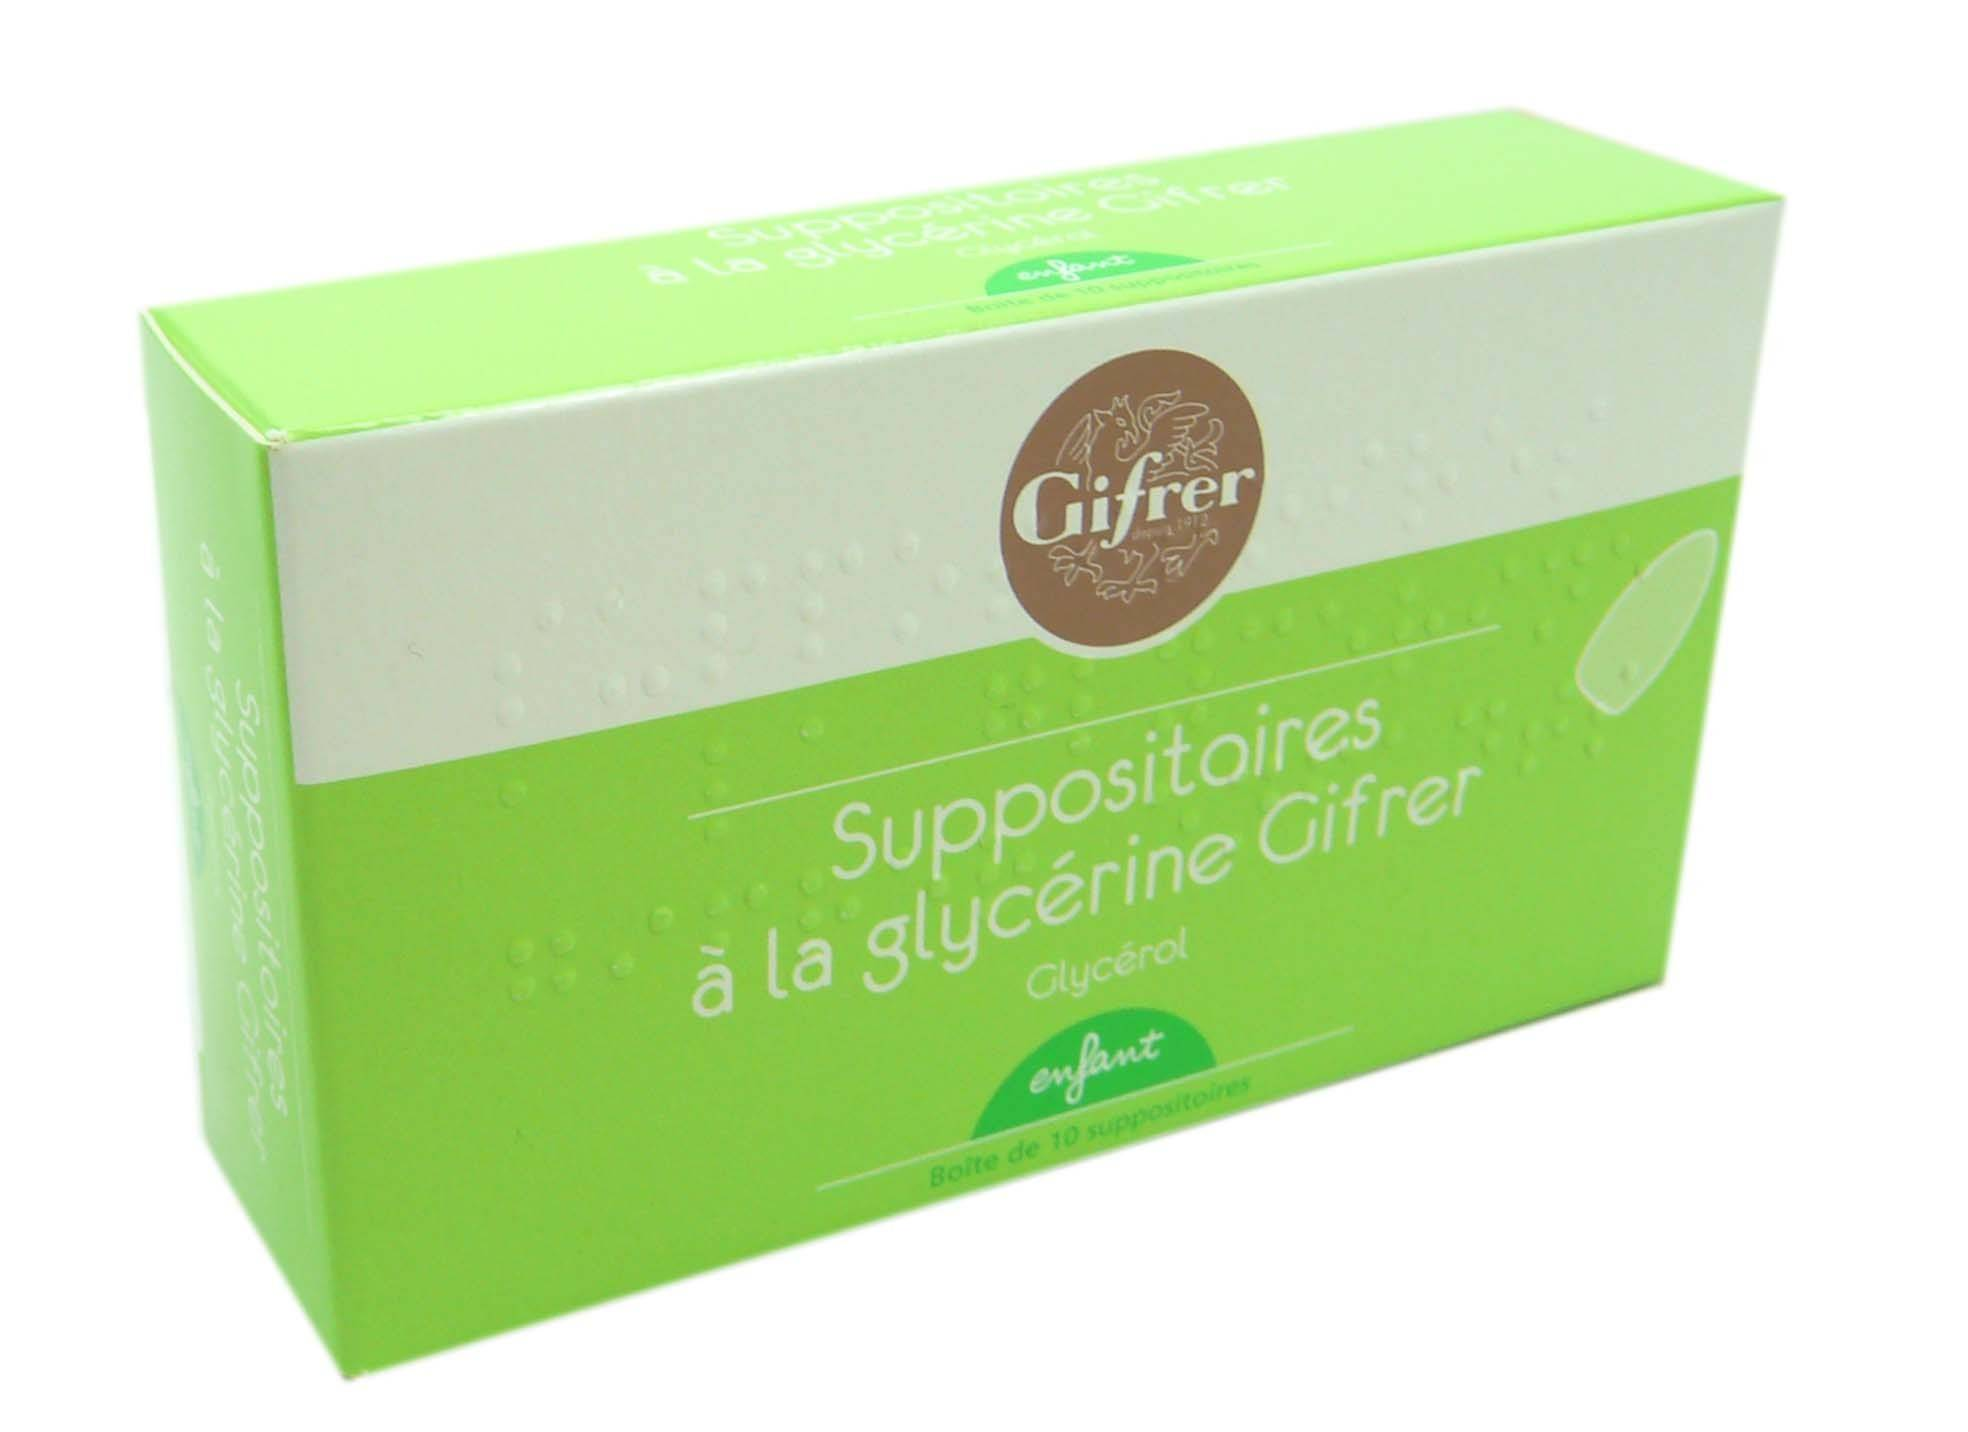 Gifrer suppositoires a la glycerine enfant  bt10